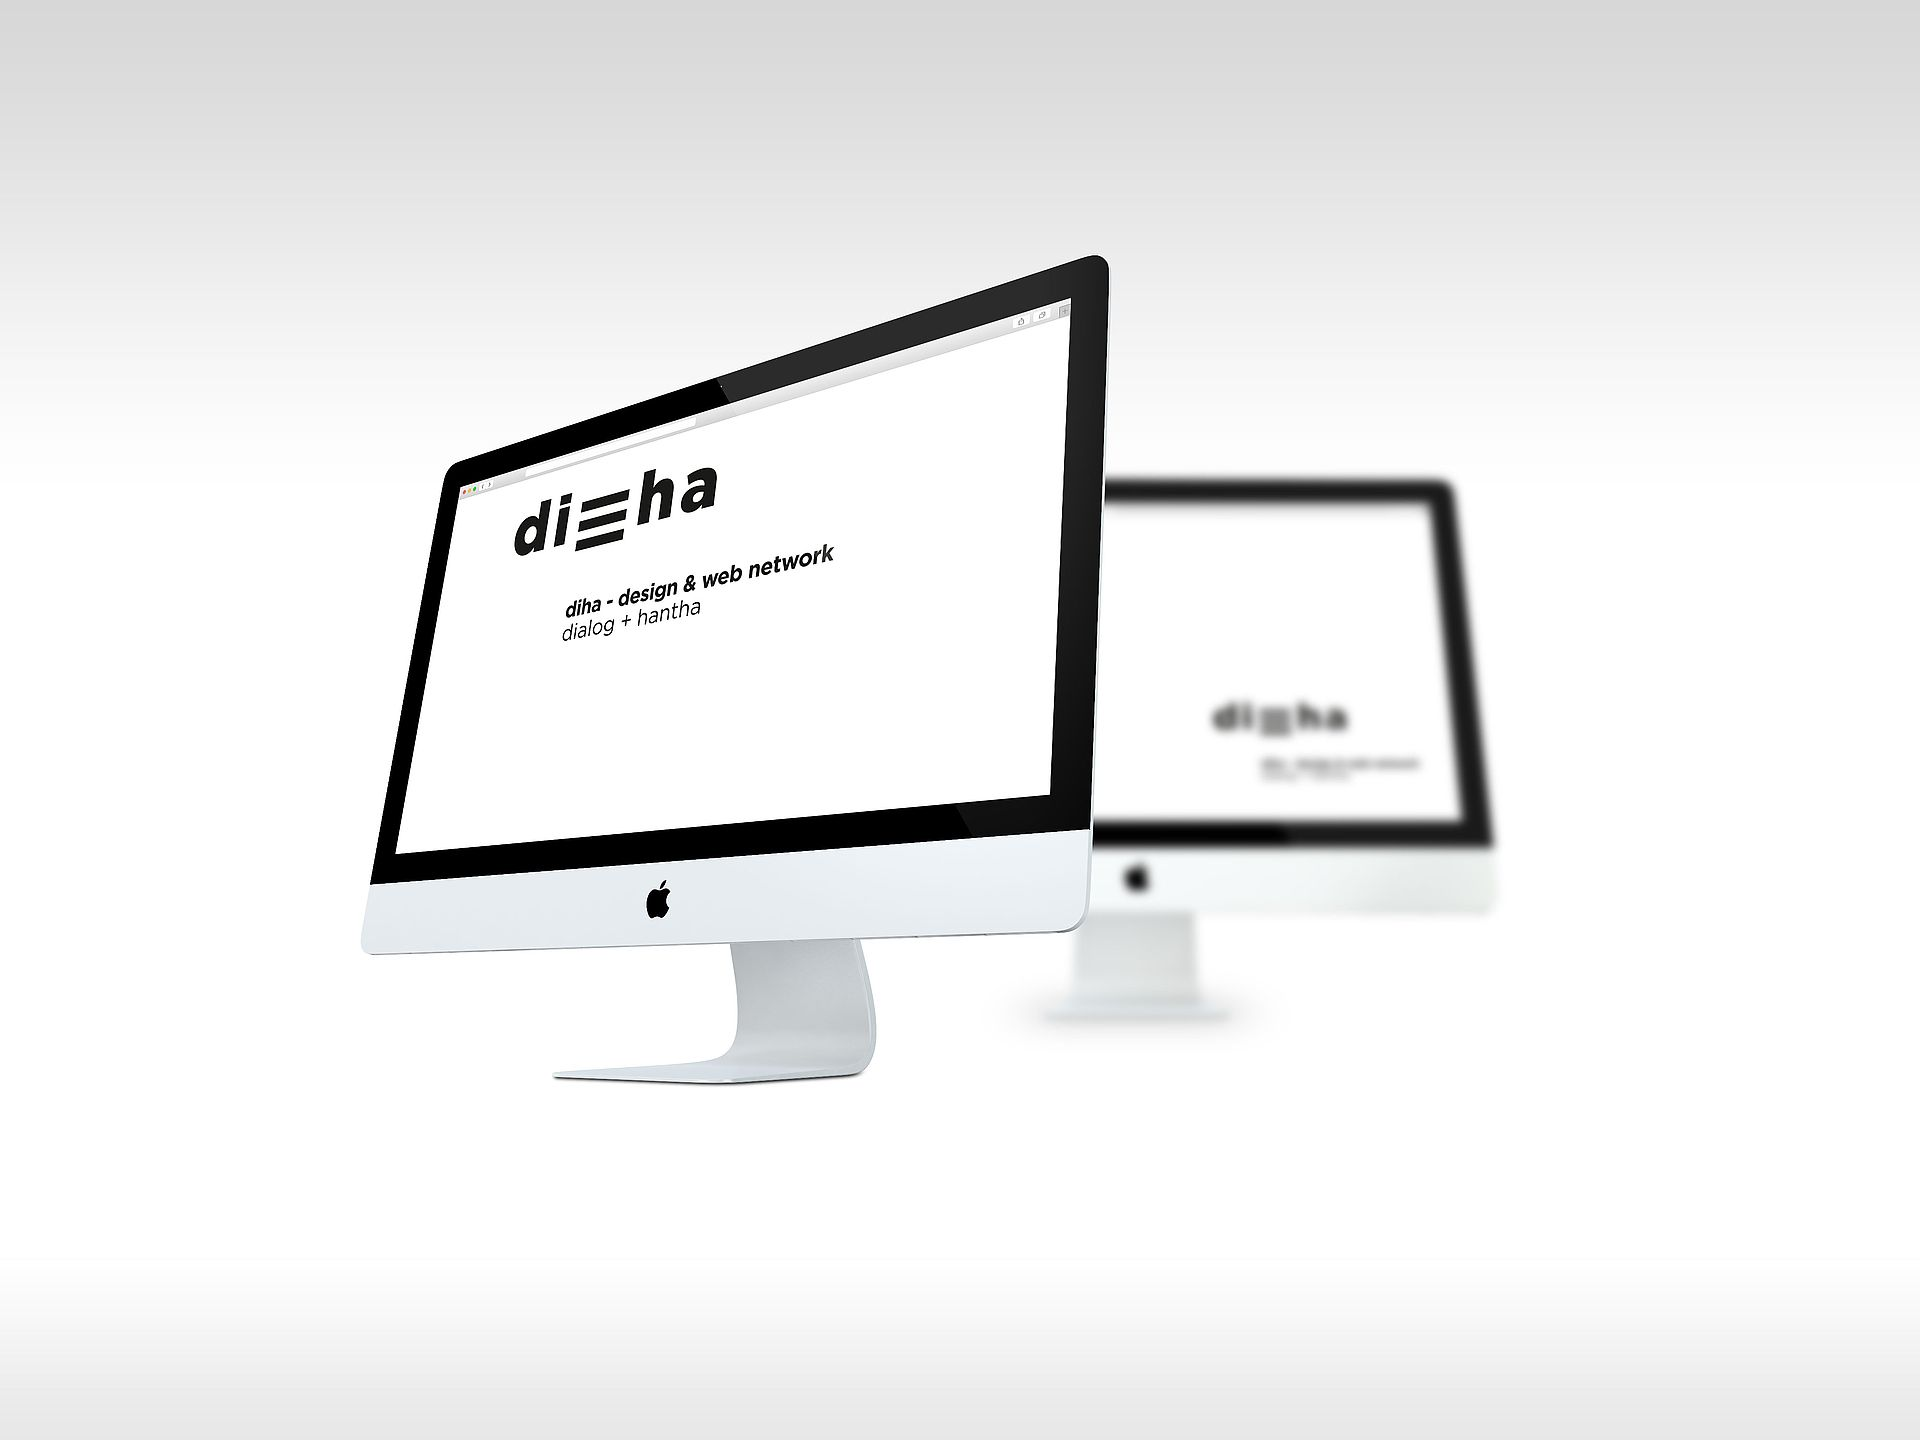 diha - design & web network